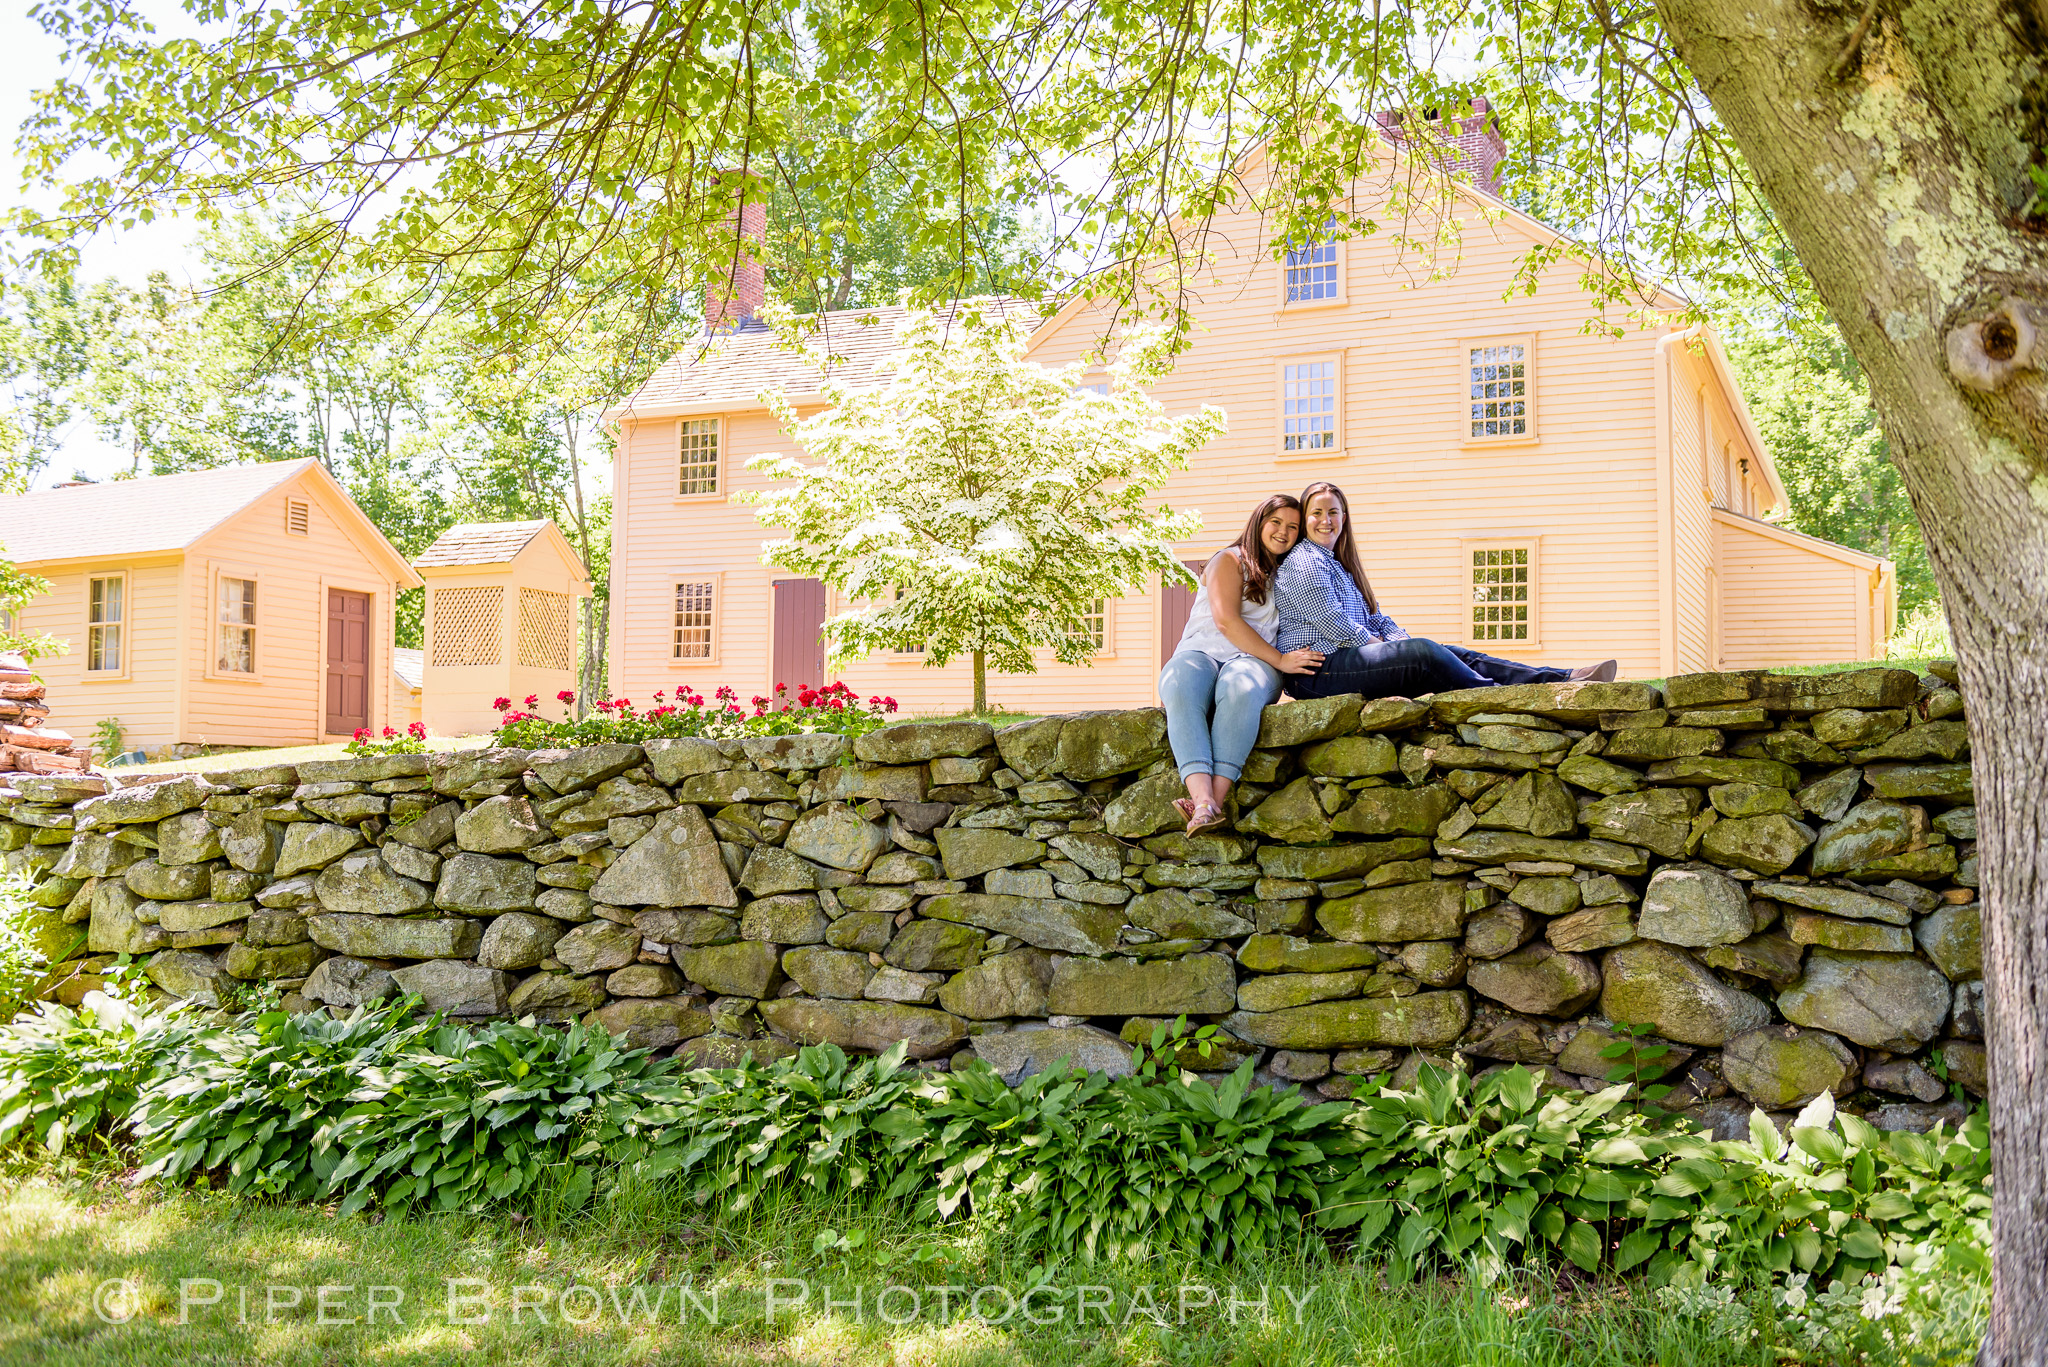 20190615-Smith Appleby House Engagement SessionMegan and Erin91.jpg